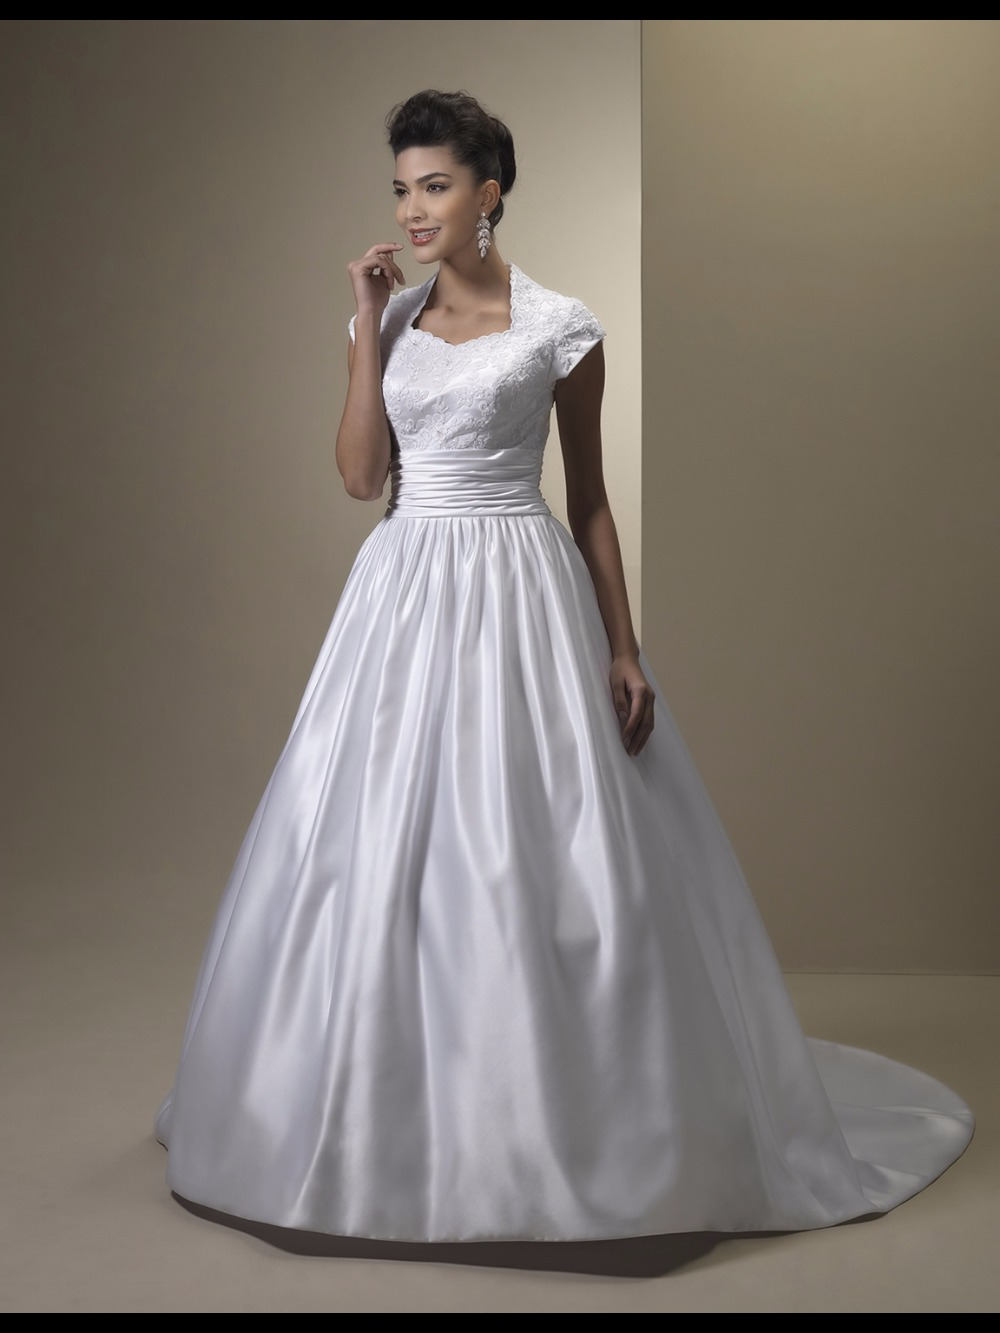 Vestido De Noiva Mermaid Modest Wedding Dresses 2019 With Cap Sleeves Satin Buttons Informal Country Reception Wedding Gowns Weddings & Events